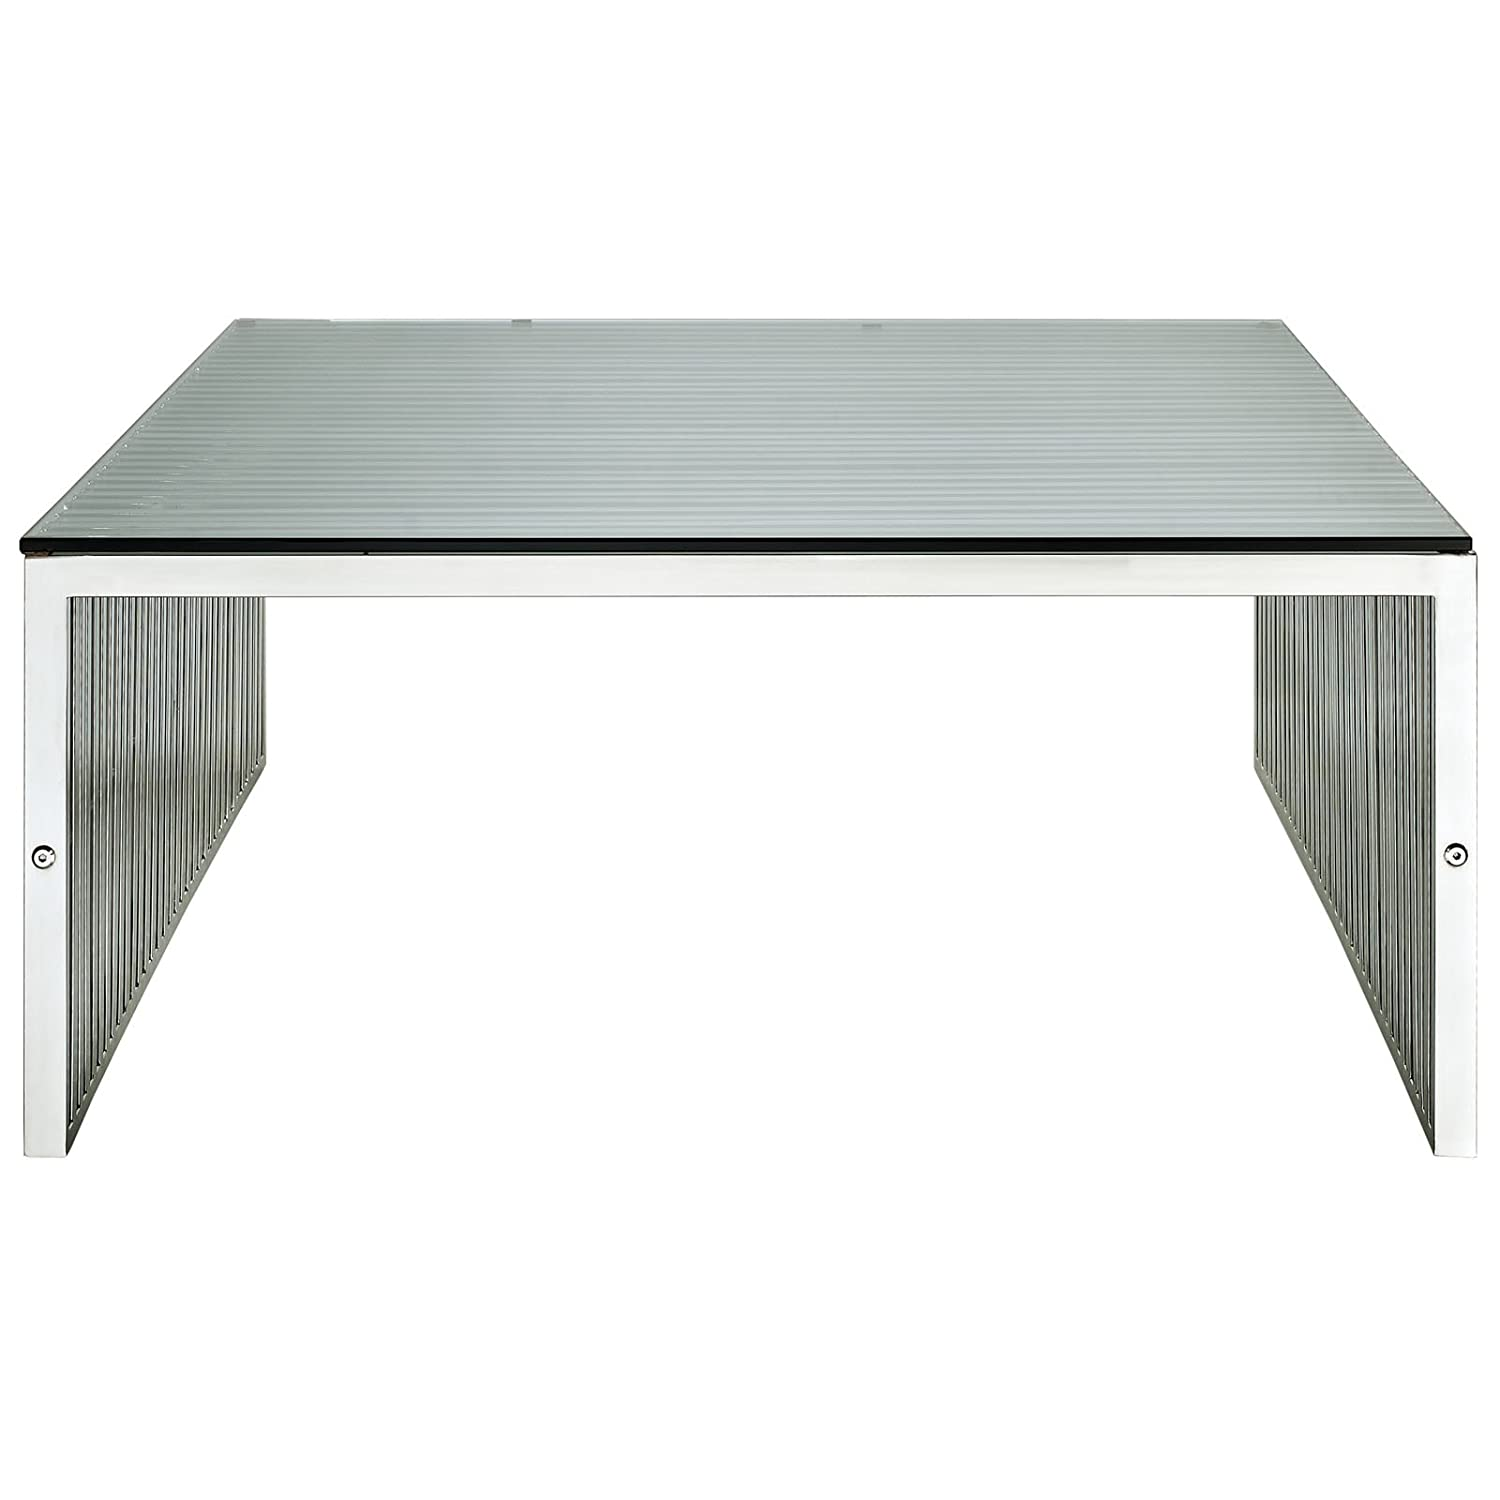 Amazon Modway Gridiron Stainless Steel Coffee Table with